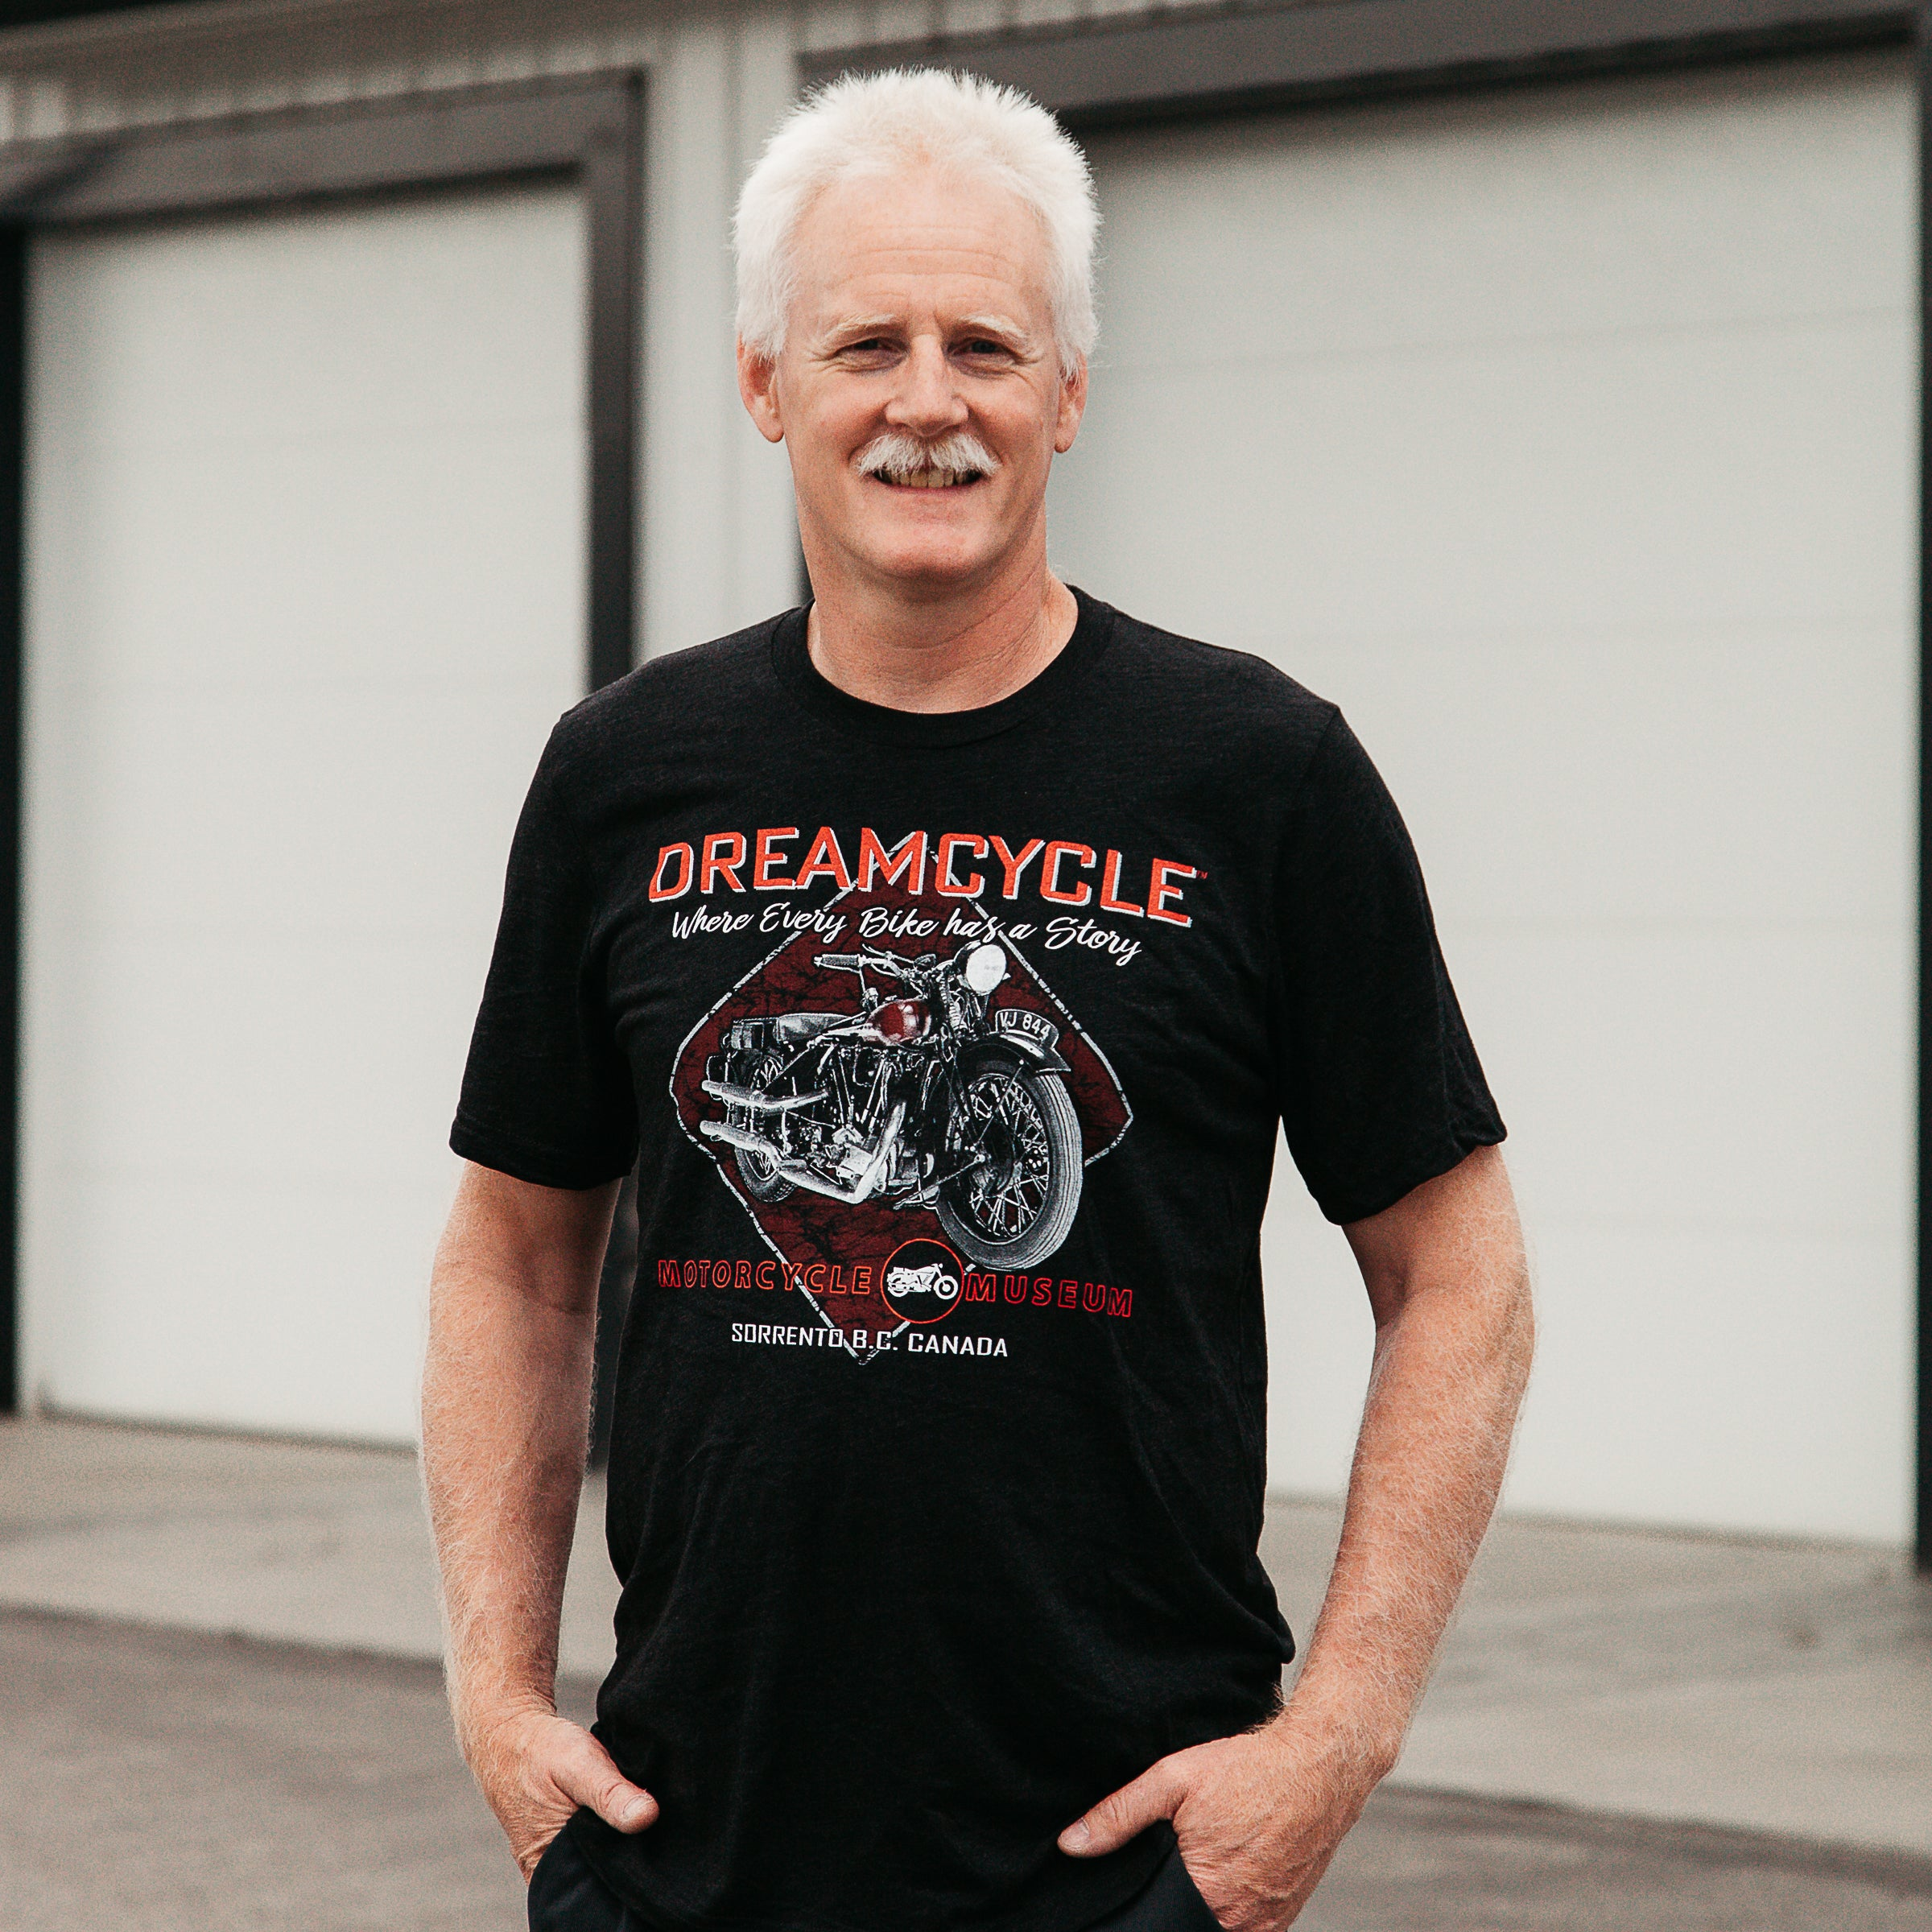 "Dreamcycle Motorcycle Museum |  Man posing in lifestyle setting wearing a tshirt that says ""Dreamcycle"" in bold letters with a motorcycle."